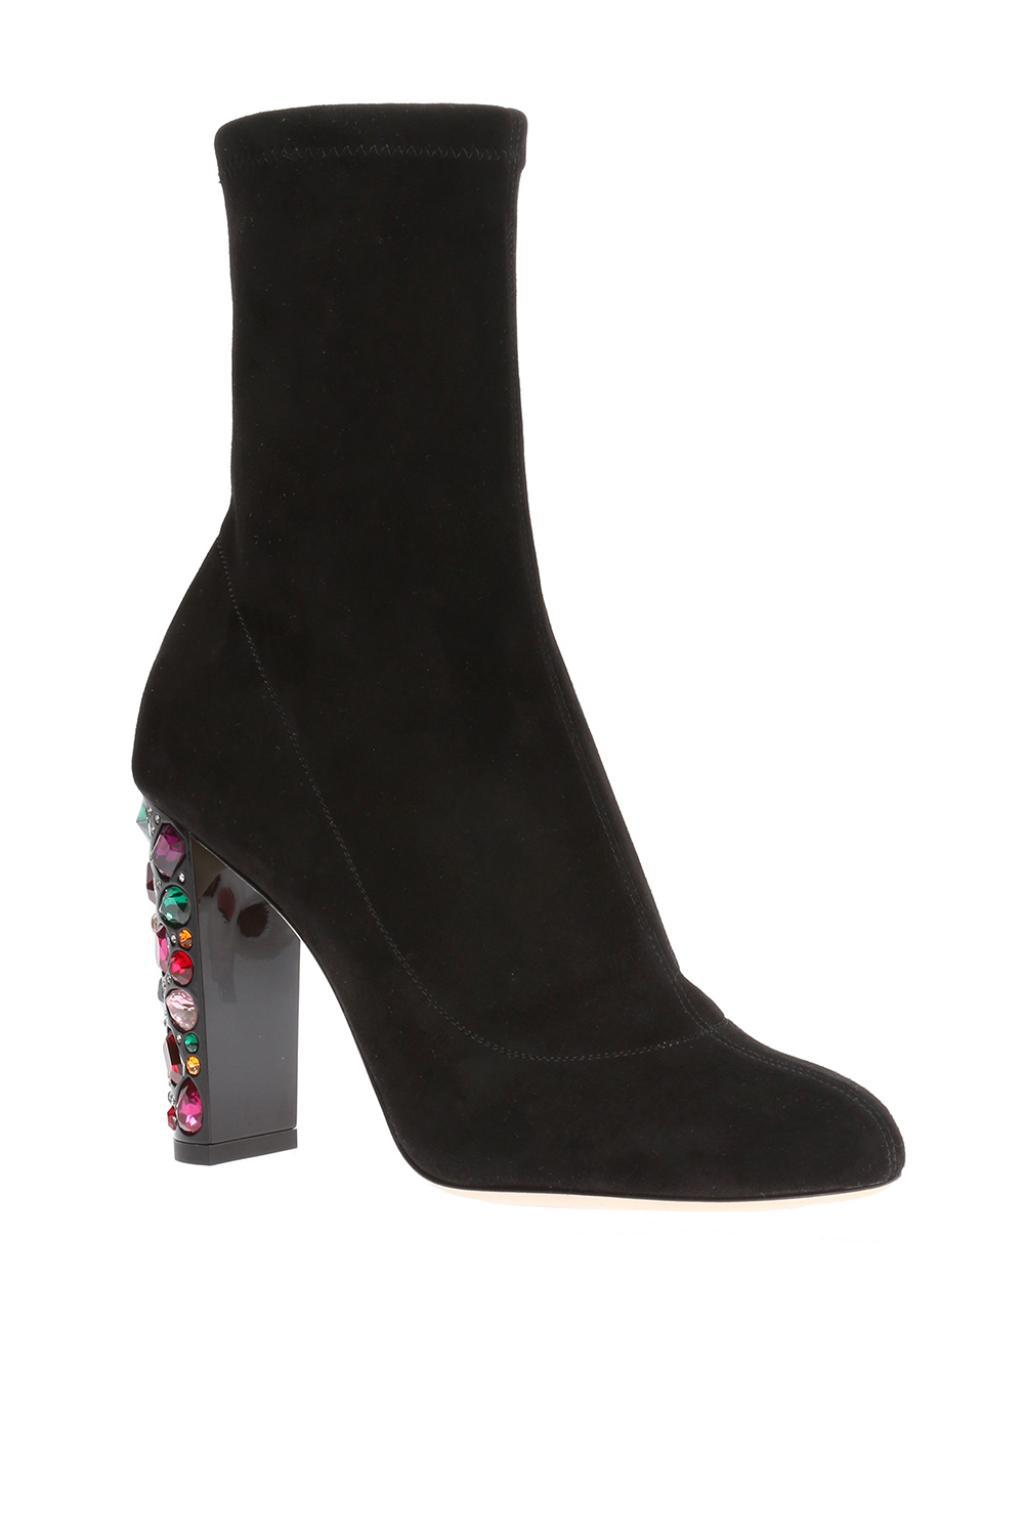 Jimmy Choo Suede 'maine' Heeled Ankle Boots in Black